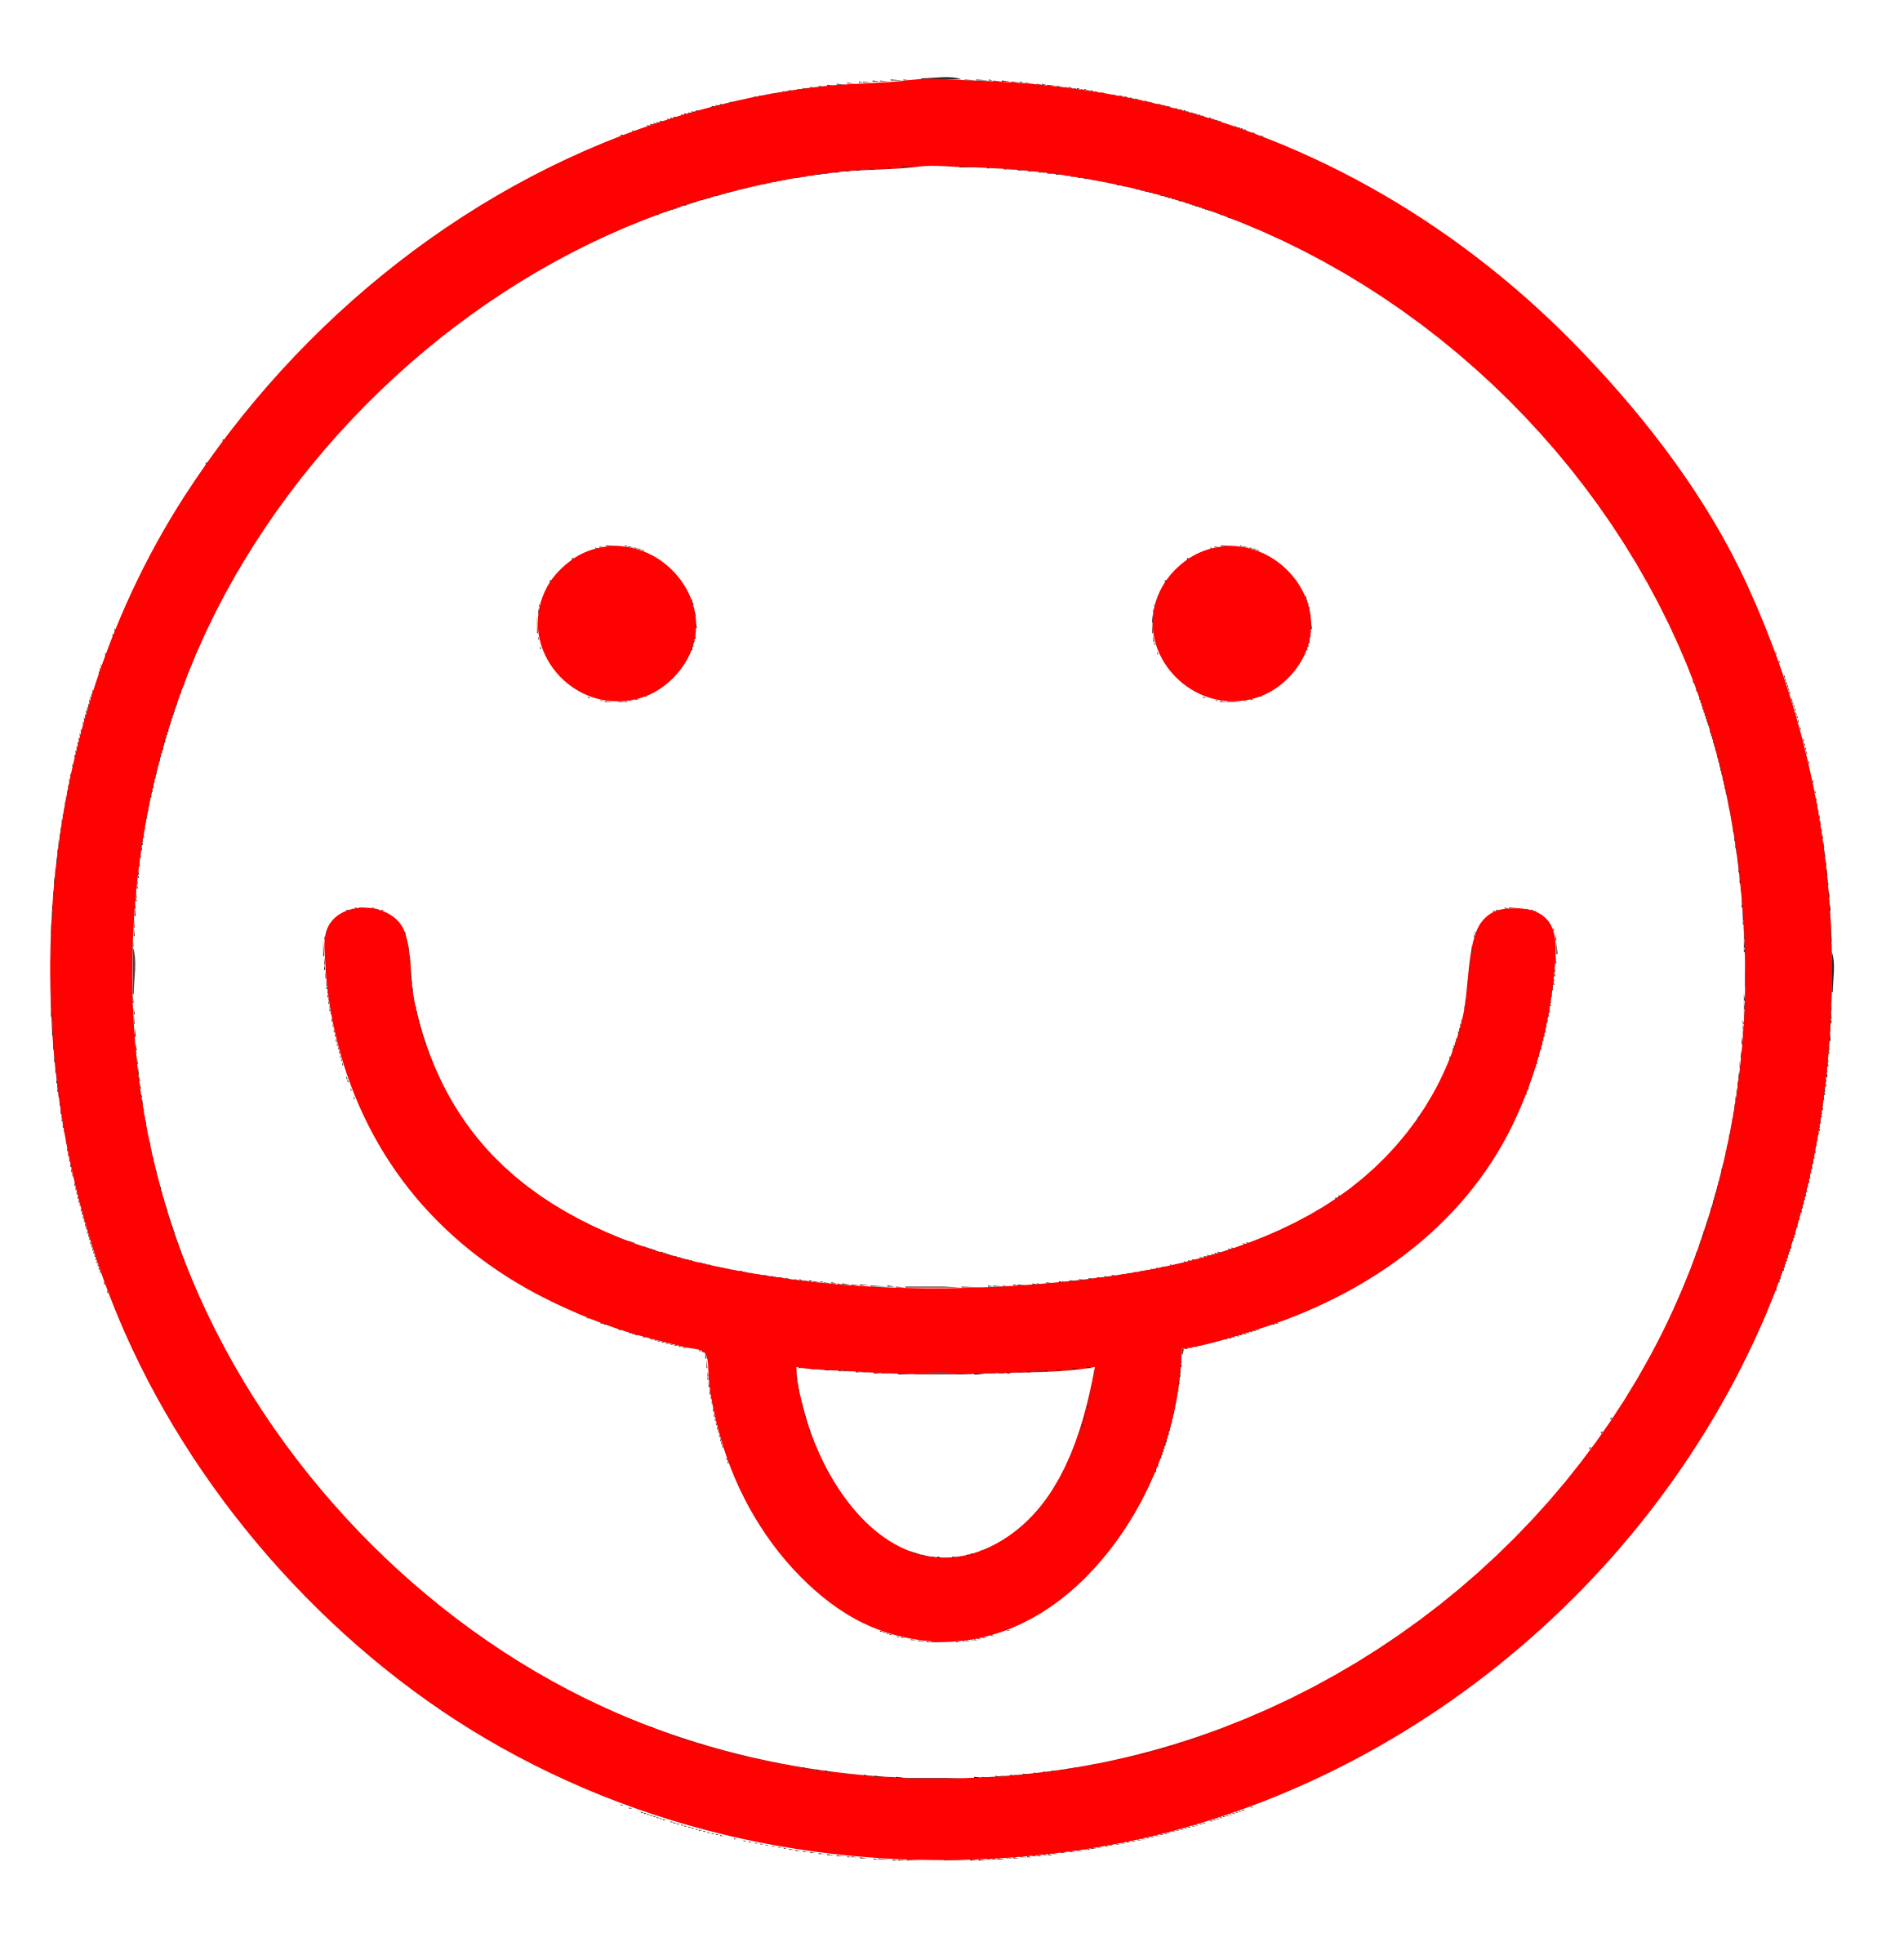 Smiley clipart red Out tongue Smiley Red sticking